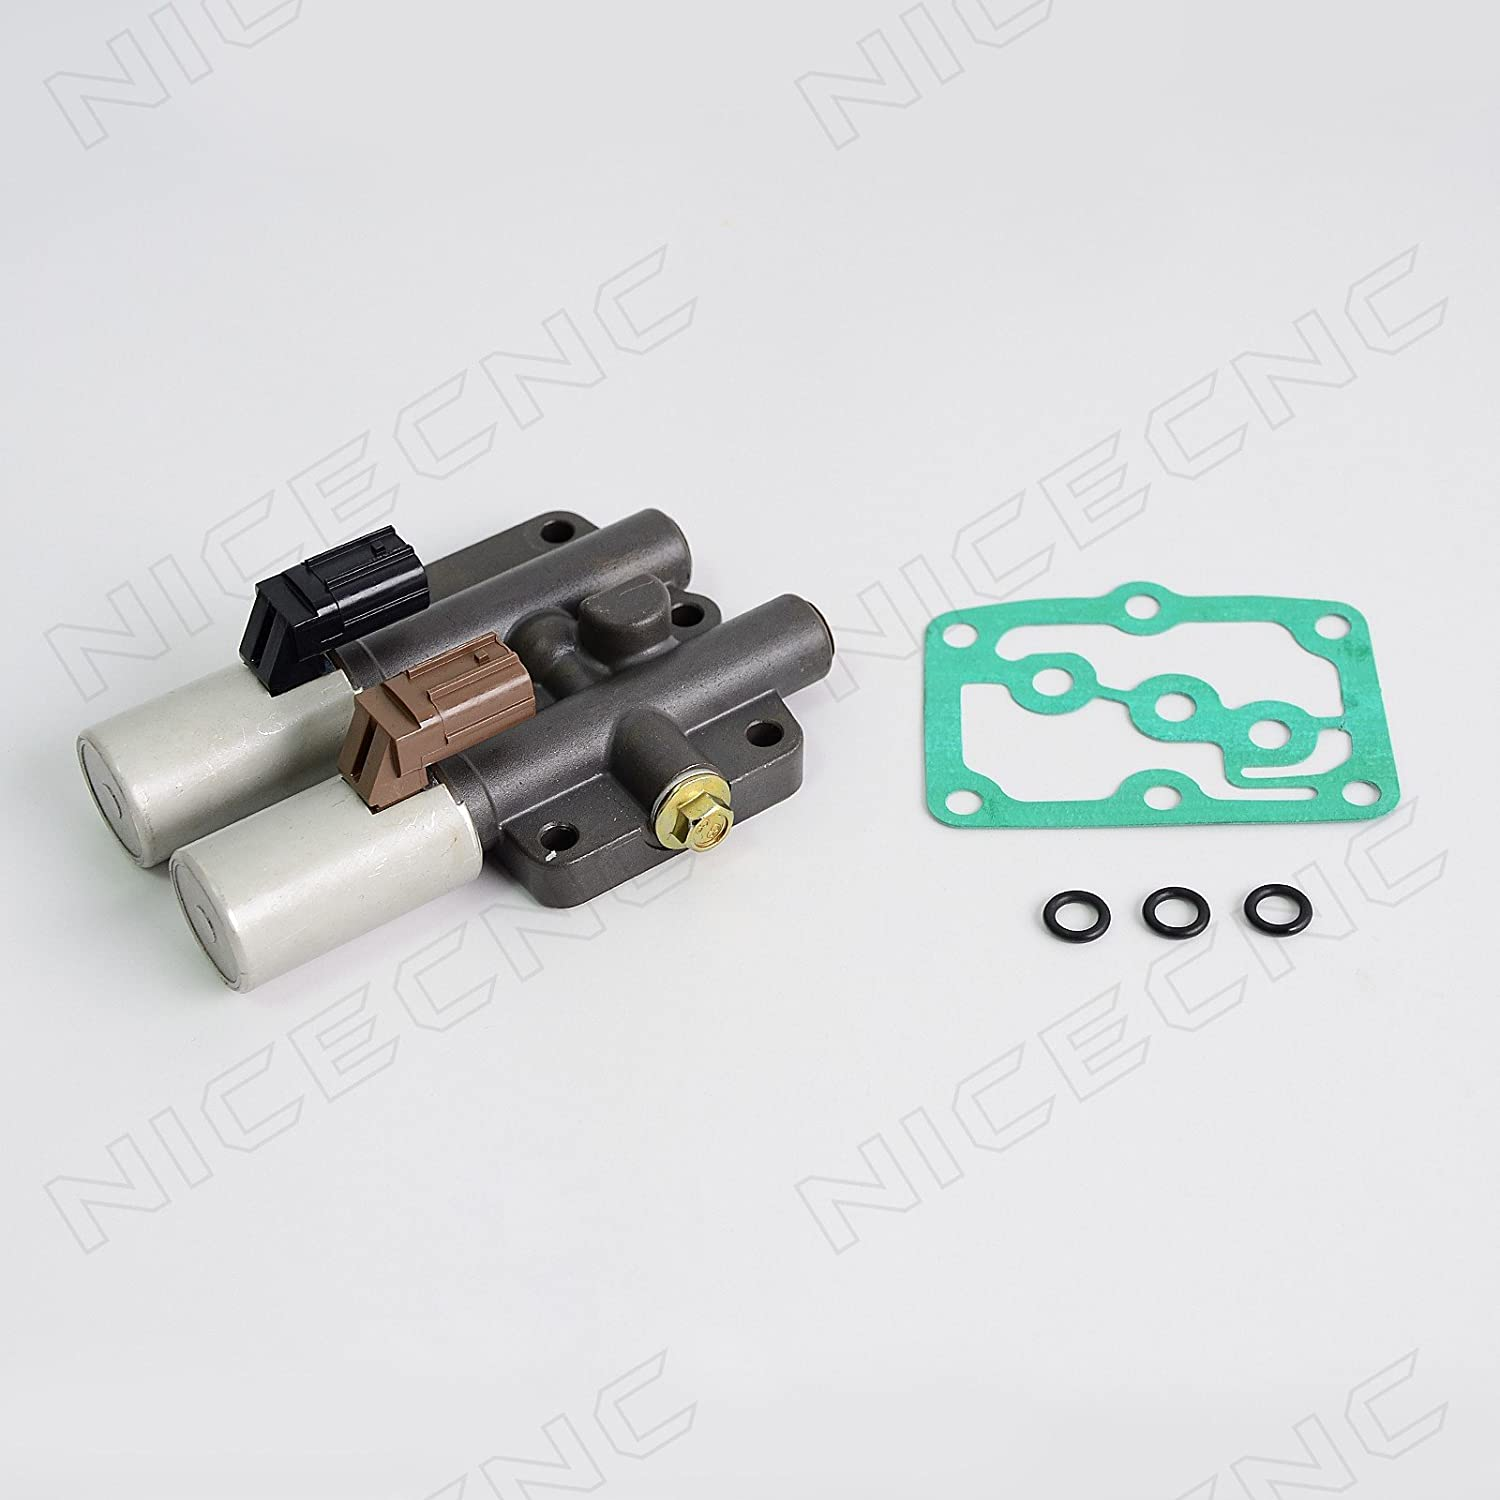 NICECNC Dual Linear Solenoid Replace Accord 4 Cyl 6 Cyl 1998-2002//2007 Odyssey Pilot 2003-2007 Prelude 1997-2001 Acura 2.3//3.0 CL 1998-1999 MDX 2001-2002 3.2 CL//TL